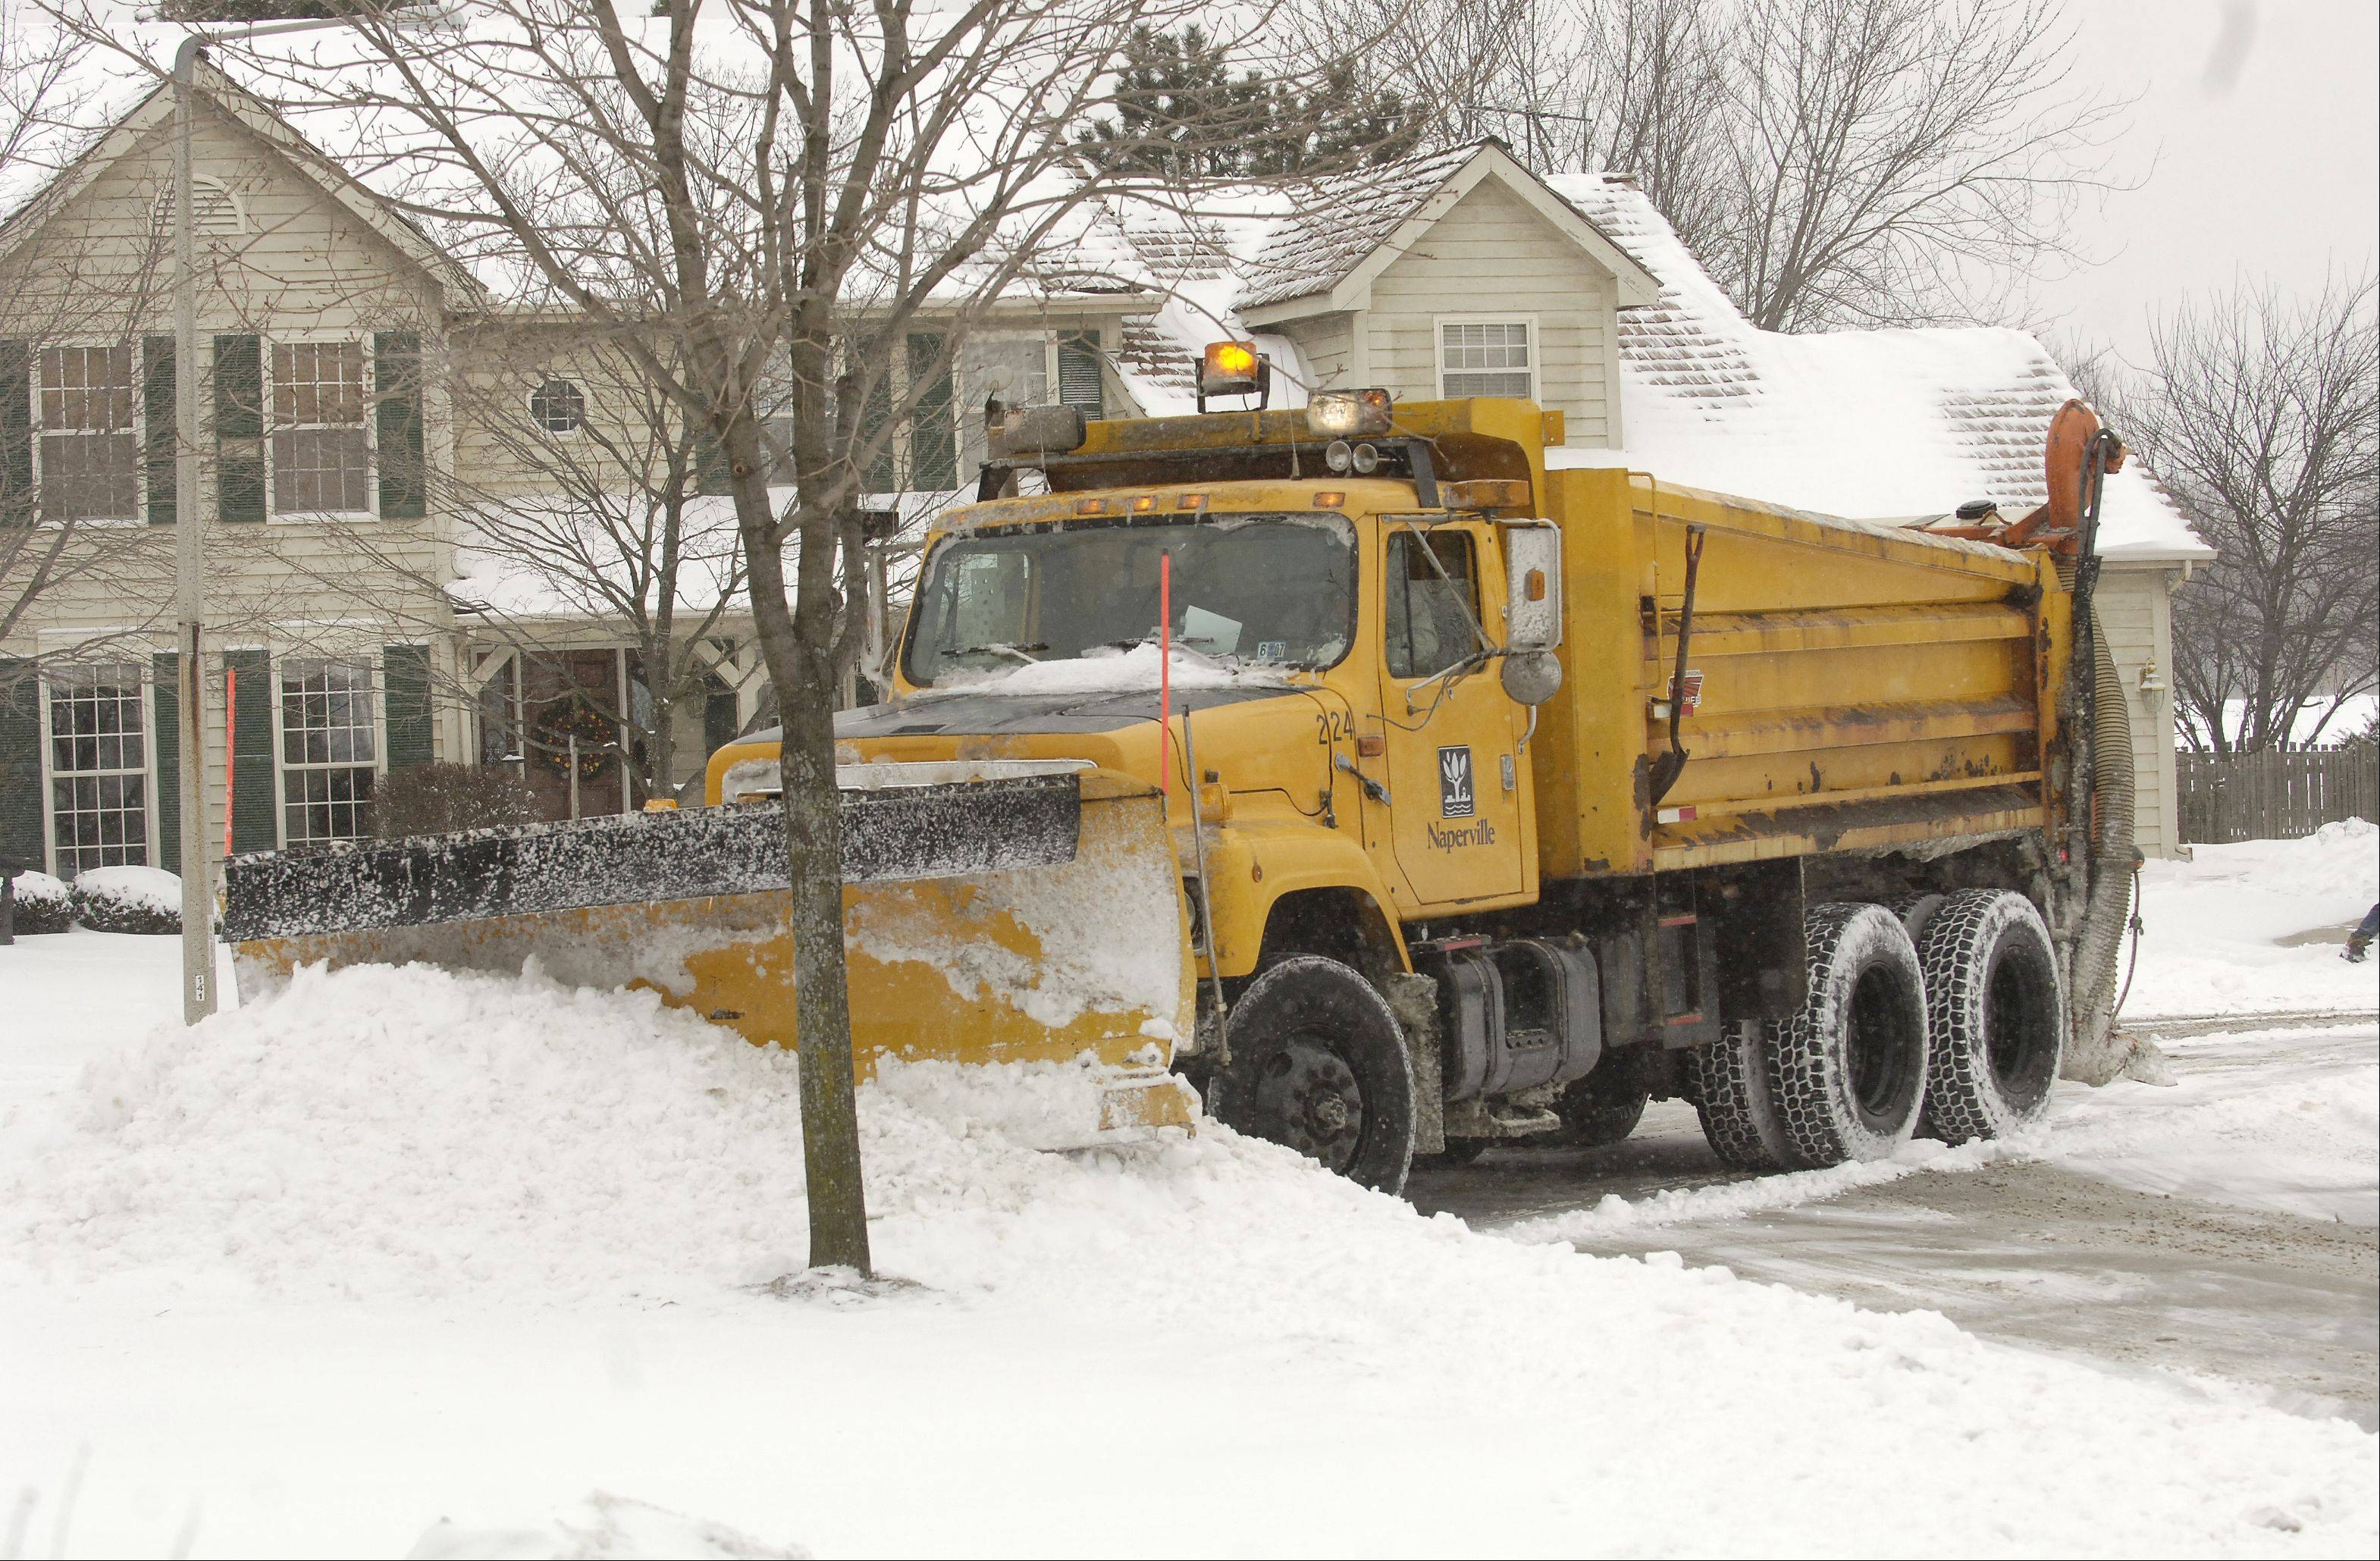 Naperville residents are now able to track city snow plows, using a tool on the city's website, during snowfalls of two inches or more.